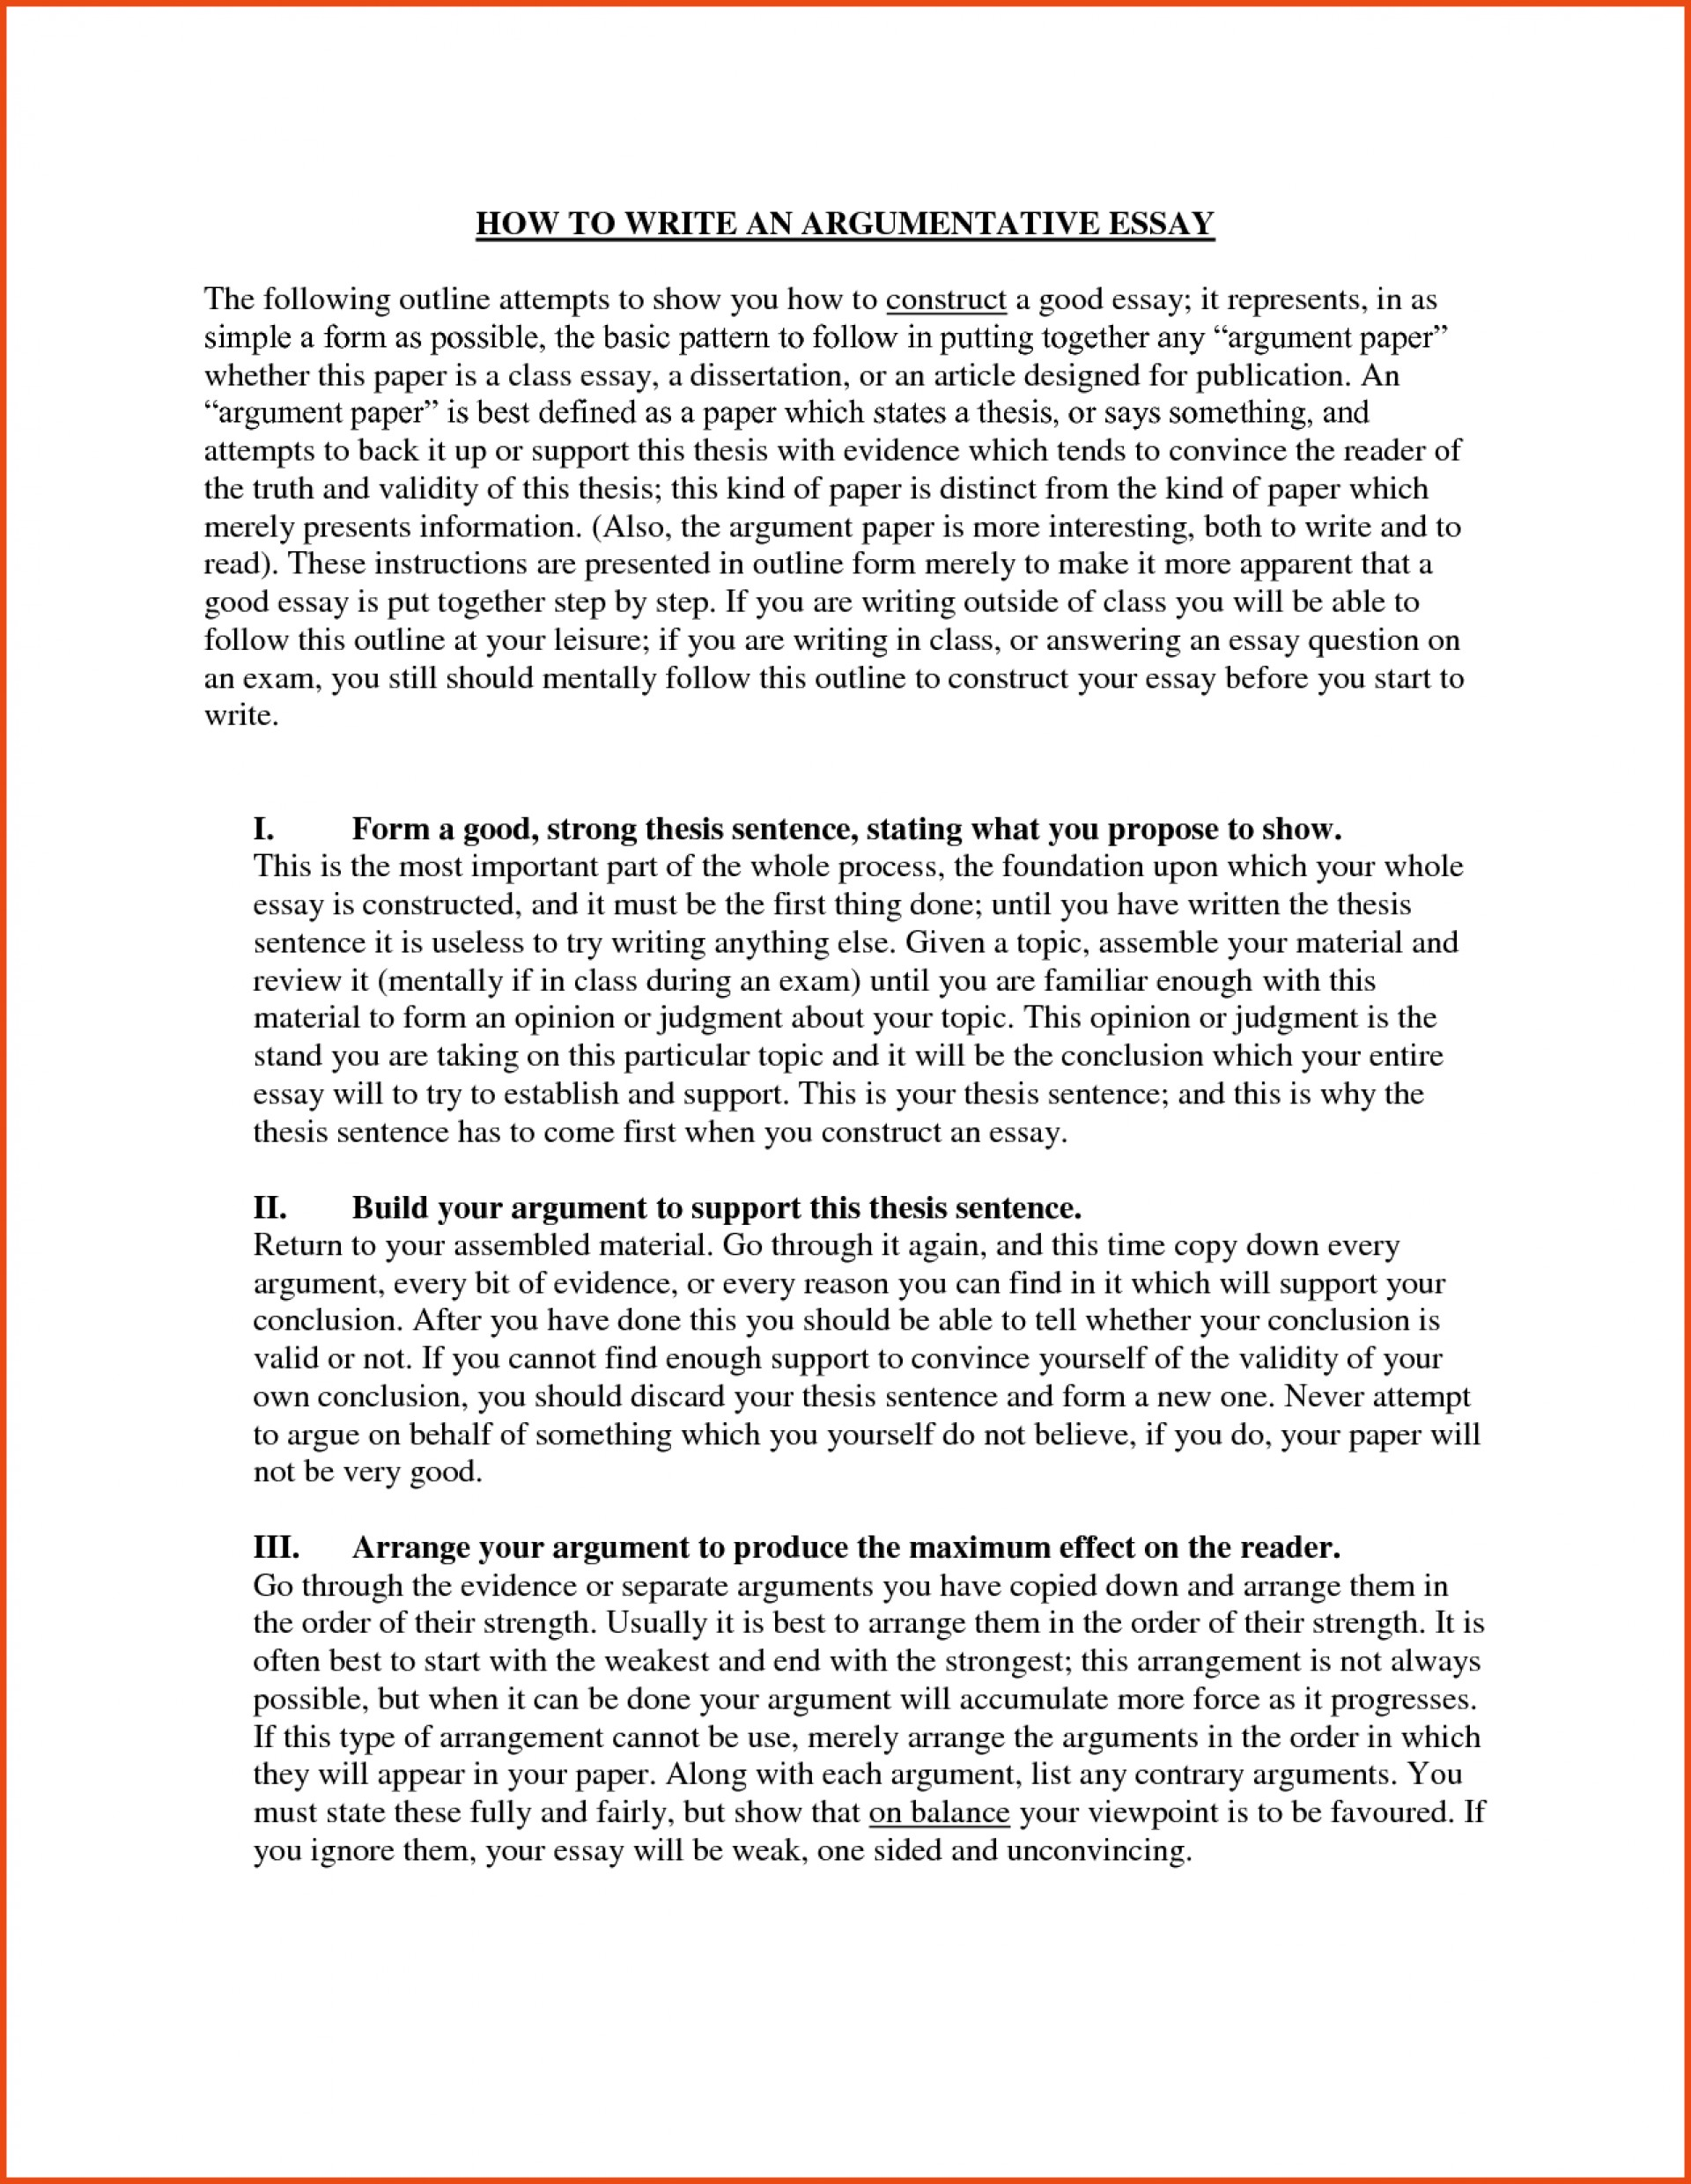 005 Essay Example How To Start An Brilliant Ideas Of Good Ways About Yourself Dissertation Nice Amazing Write A Paper On Climate Change Expository Examples With Quote Format 1920